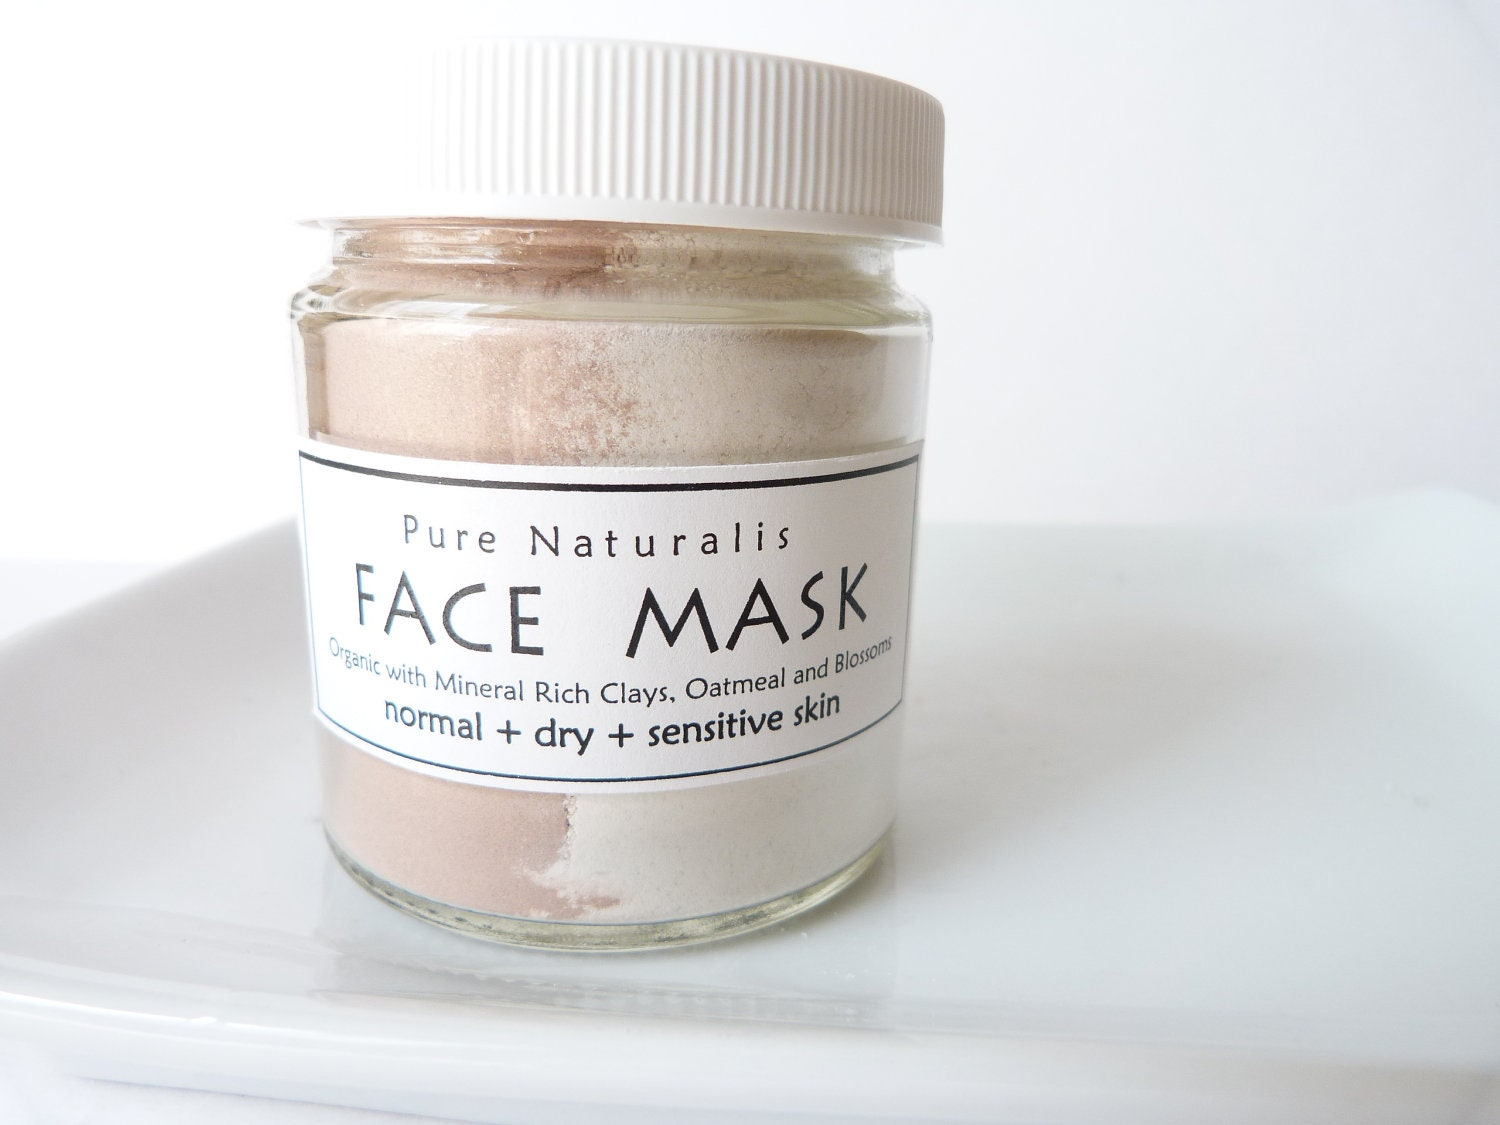 Face Mask, Natural with Organic Botanicals and Clays, Normal to Dry and Sensitive Skin, Vegan, Unscented,118 ml (4 oz.)